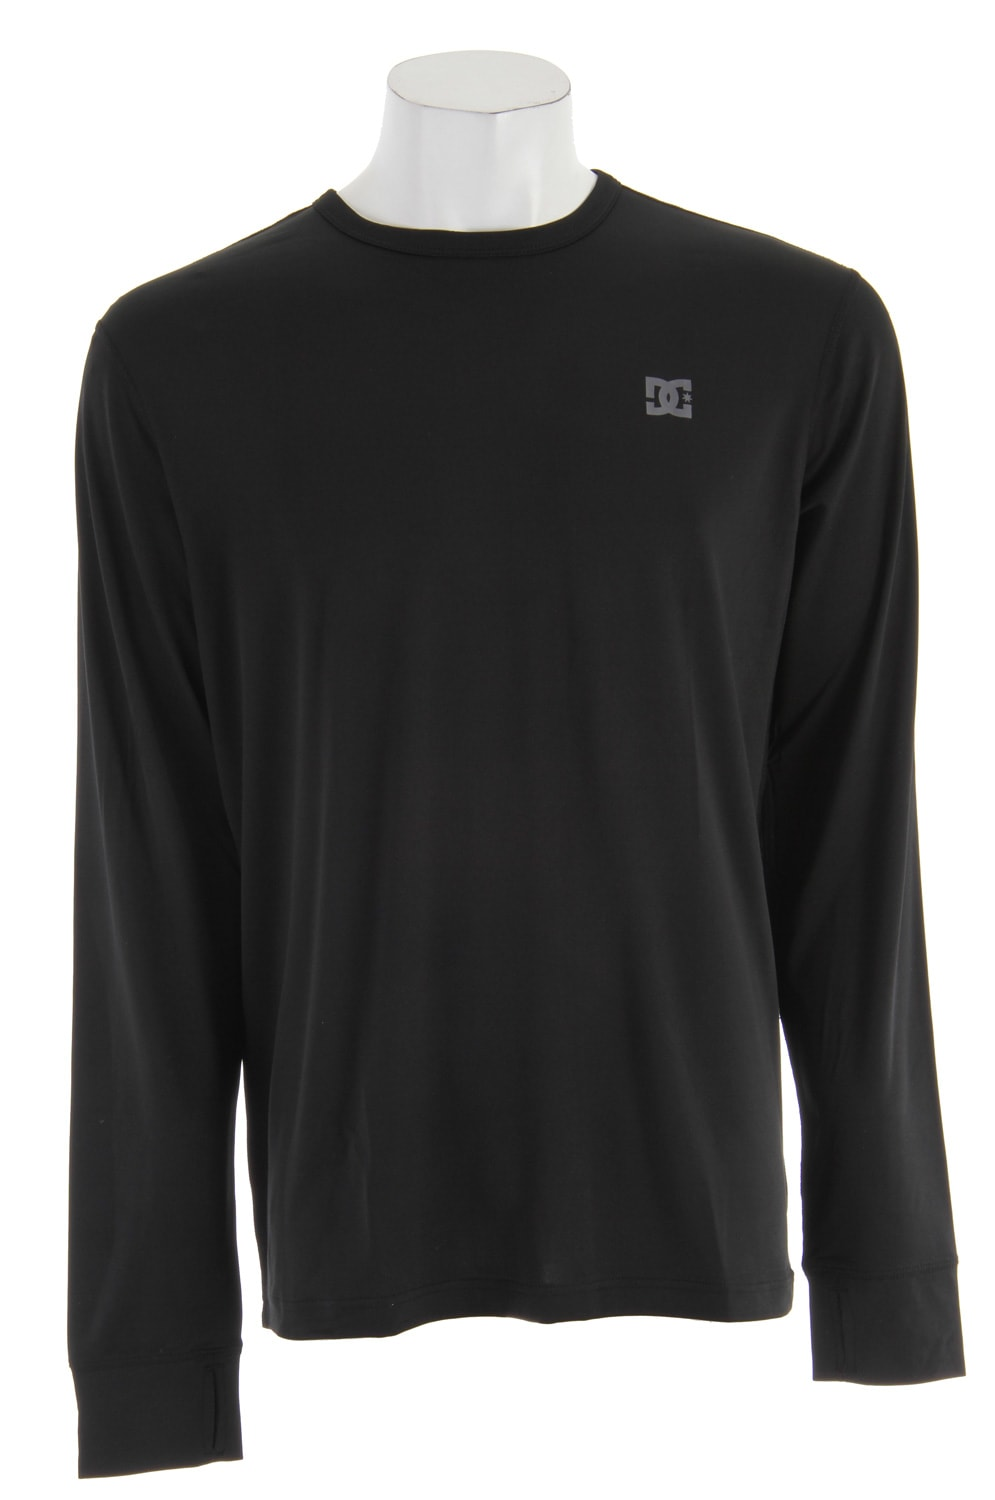 Shop for DC Agate Baselayer Top Black - Men's